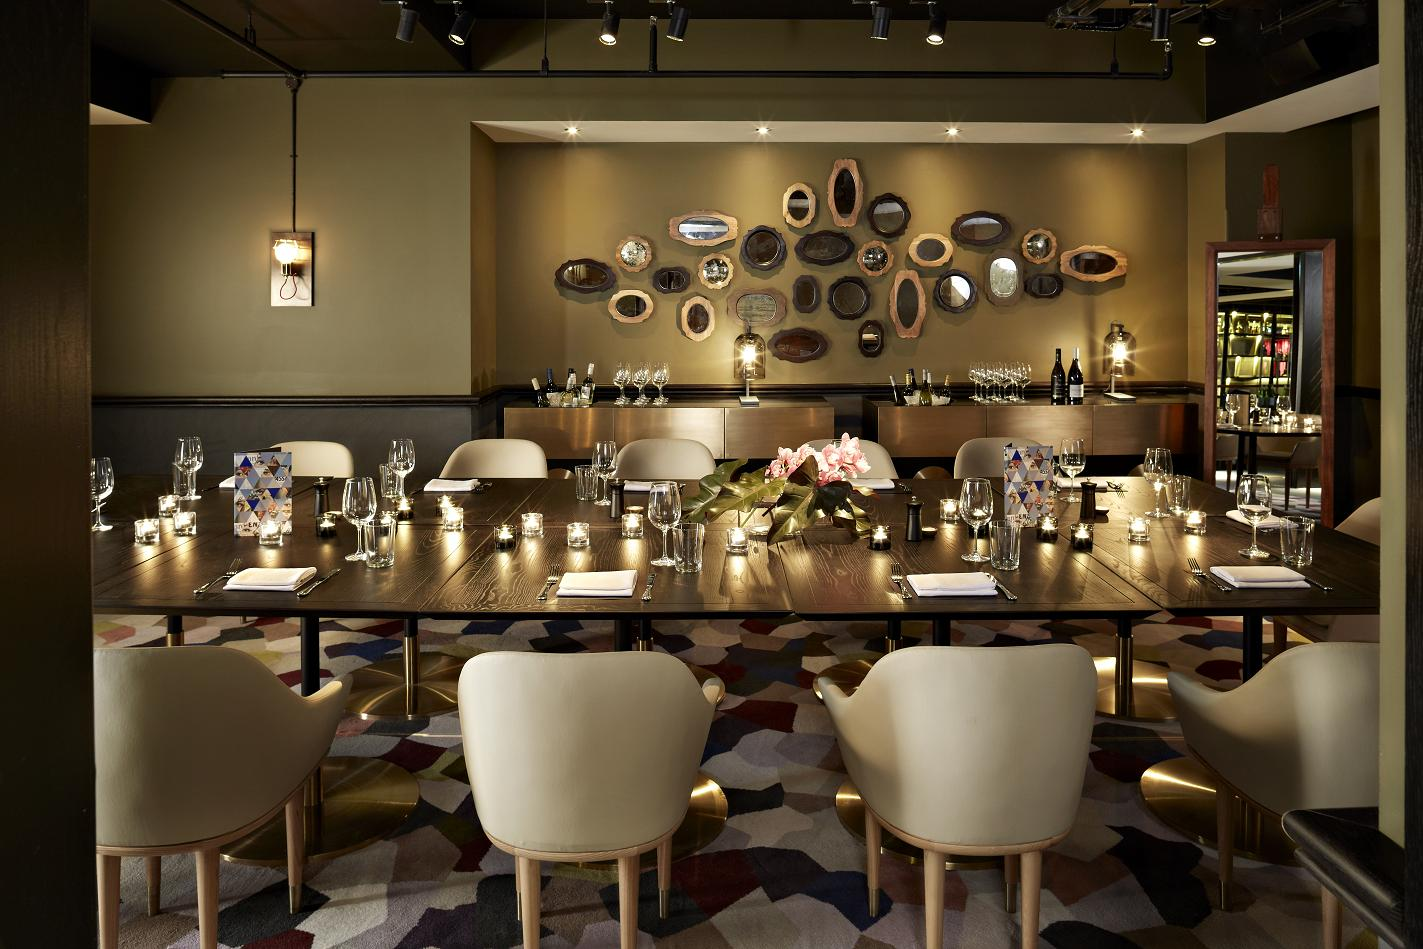 Private Dining Room event space at VB Steakhouse in New York City, NYC, NY/NJ Area